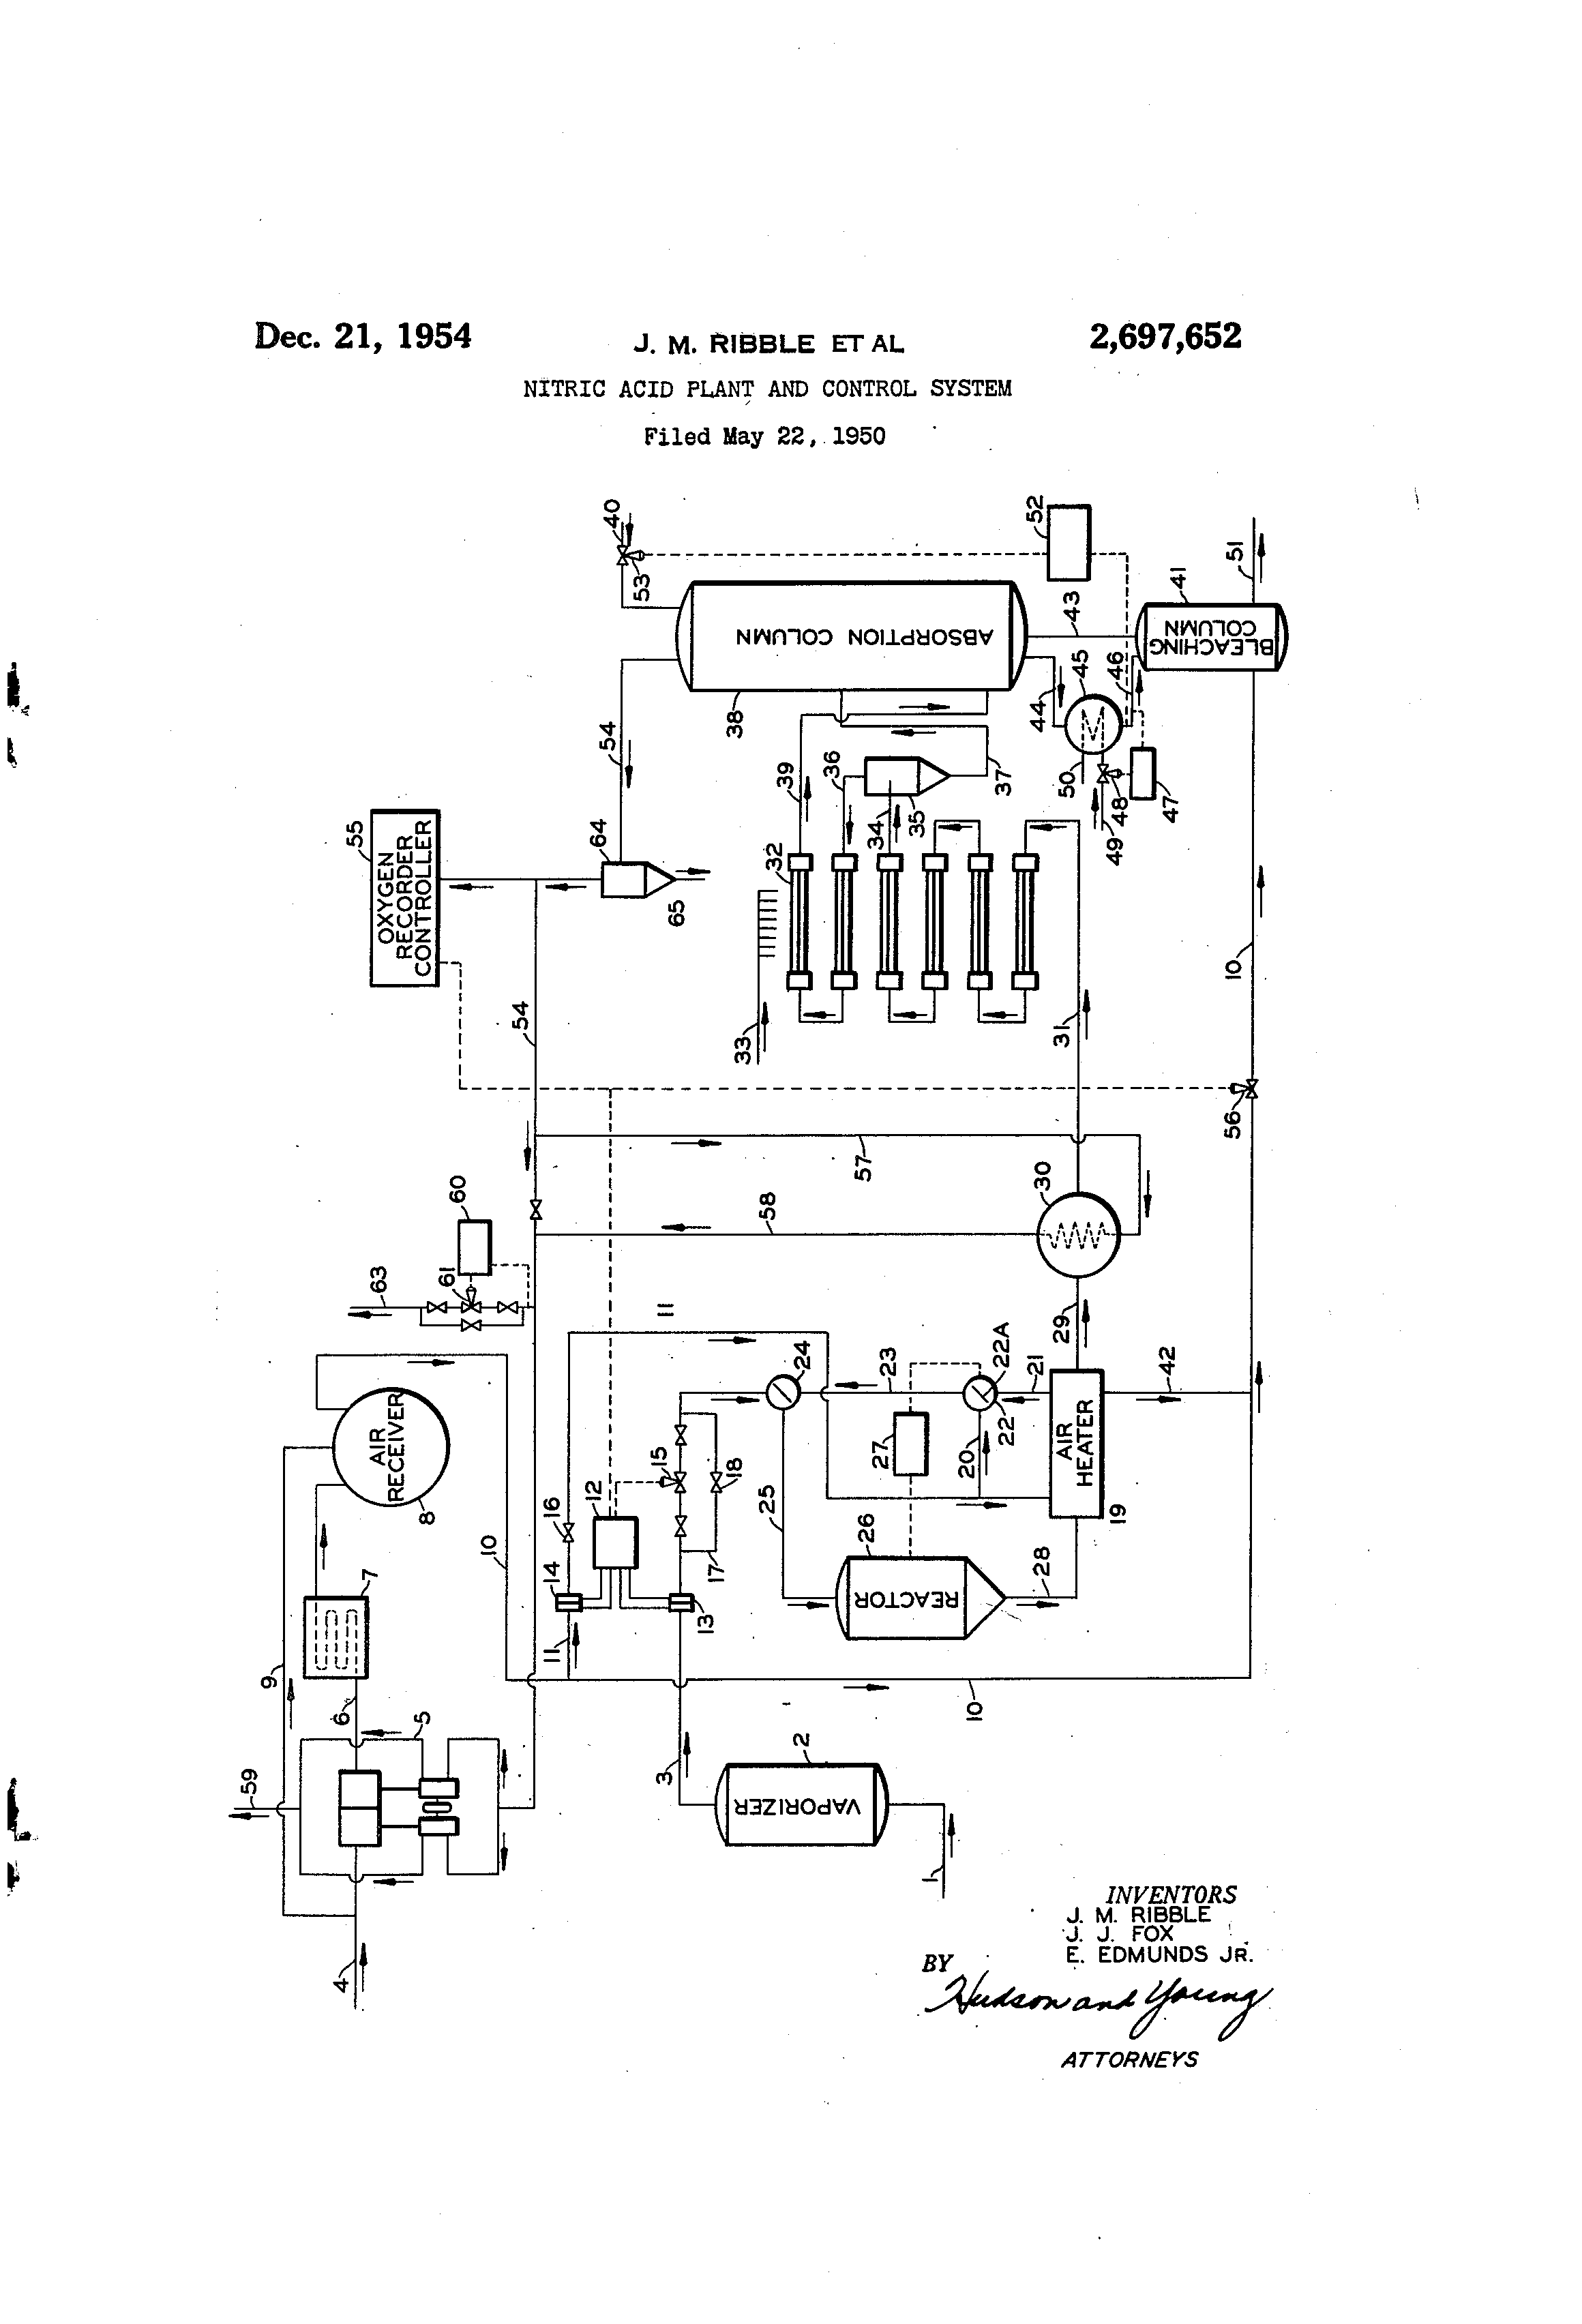 89 Process Flow Diagram Of Nitric Acid Production  Process Nitric Flow Of Production Diagram